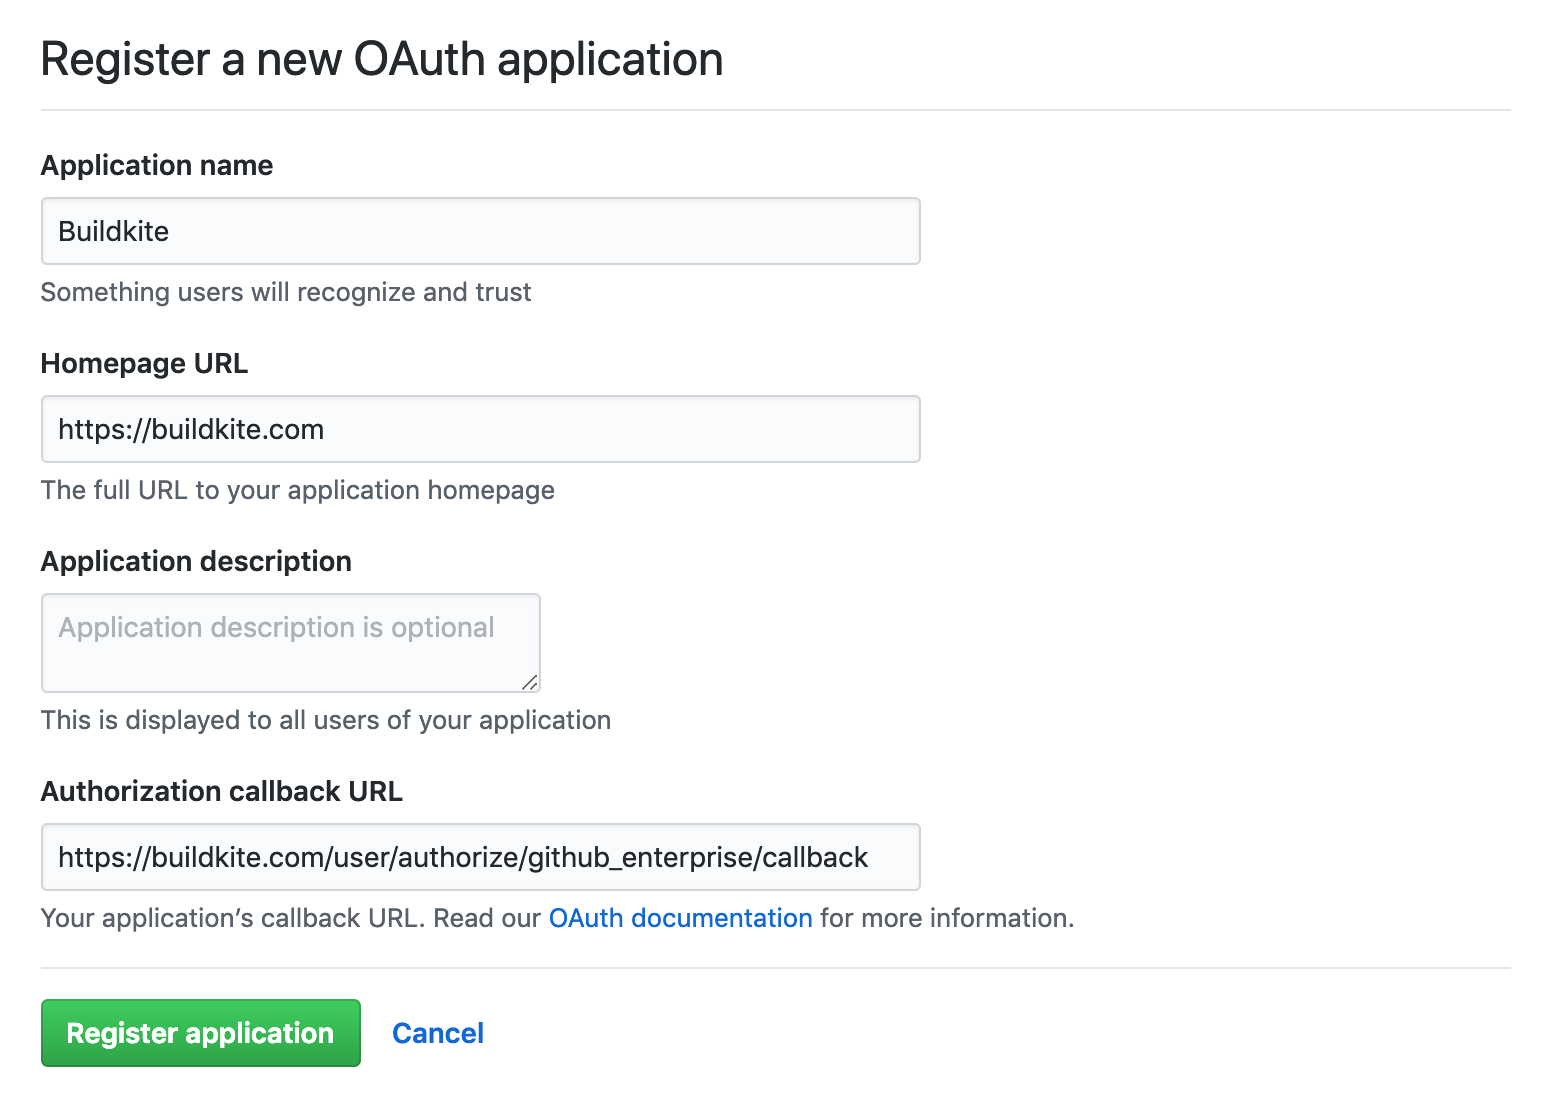 Screenshot of the form to Register an OAuth Application